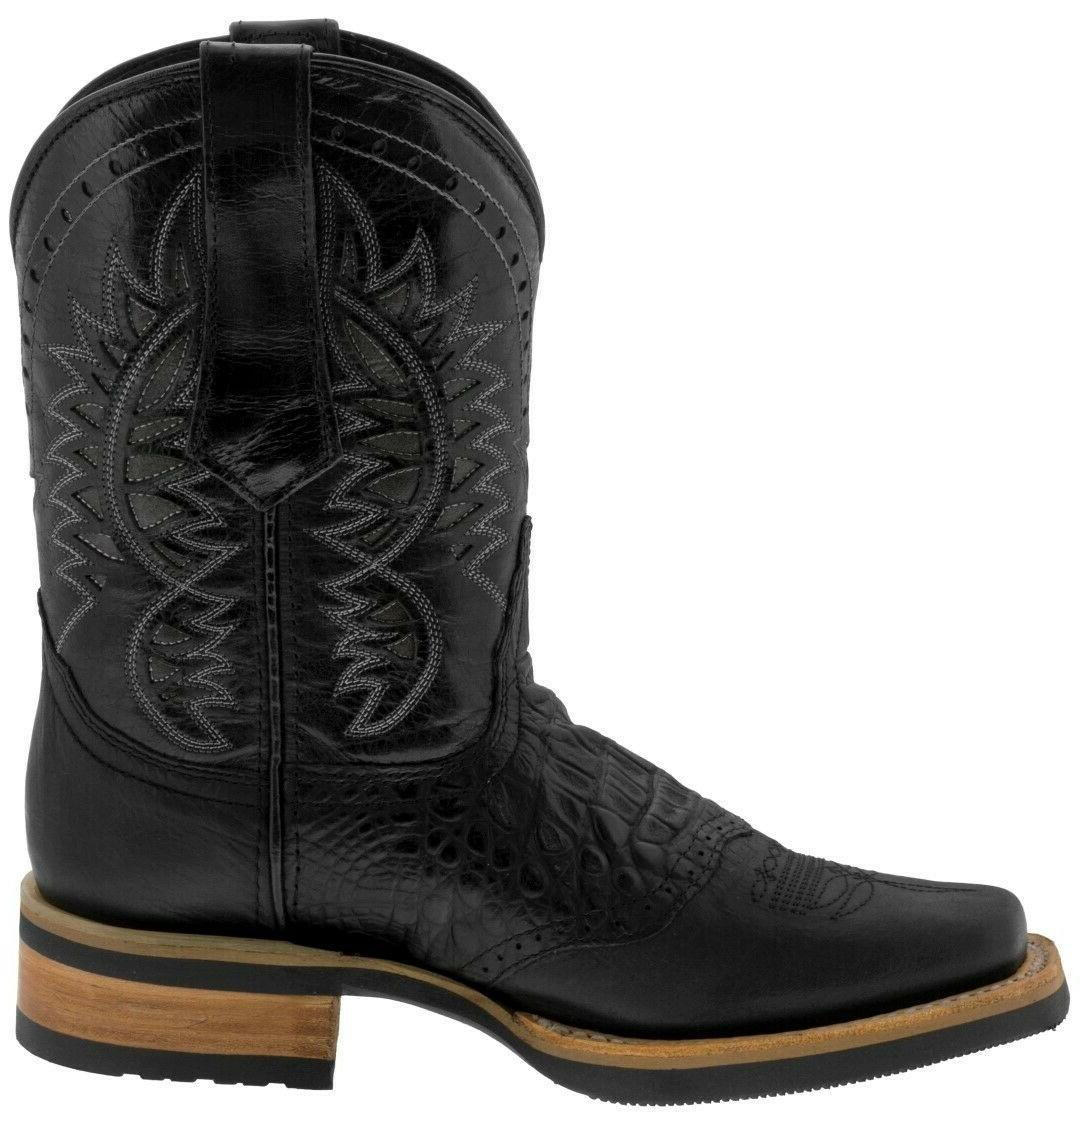 Mens Boots Square